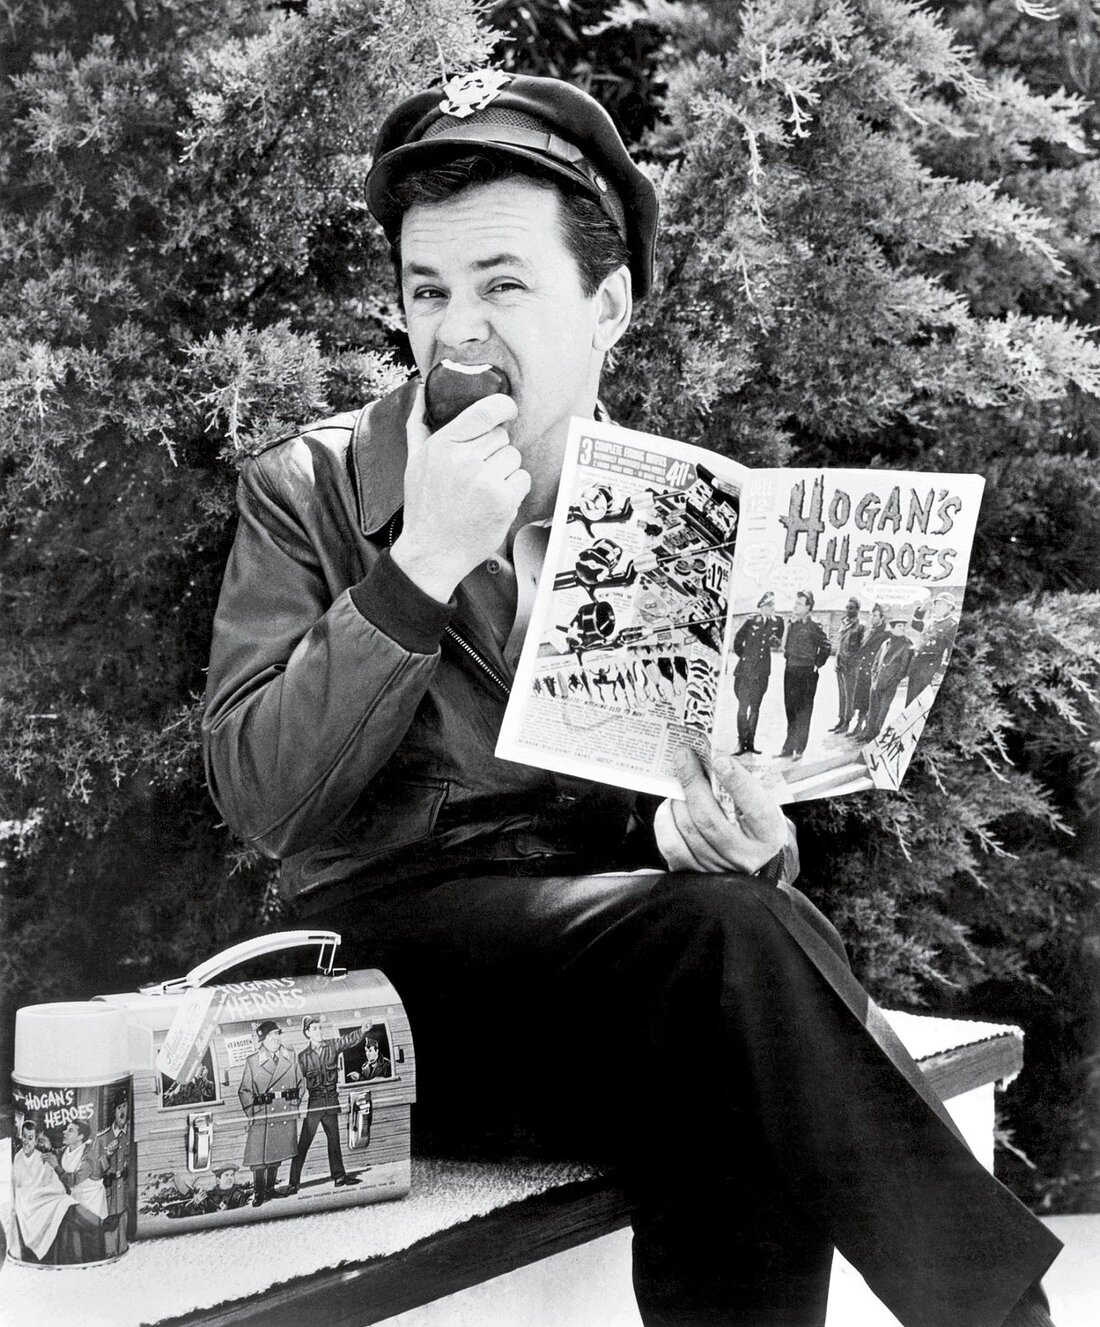 HOGAN'S HEROES, Bob Crane with thermos, lunchbox and comic book all product spinoffs from the show, 1965-1971